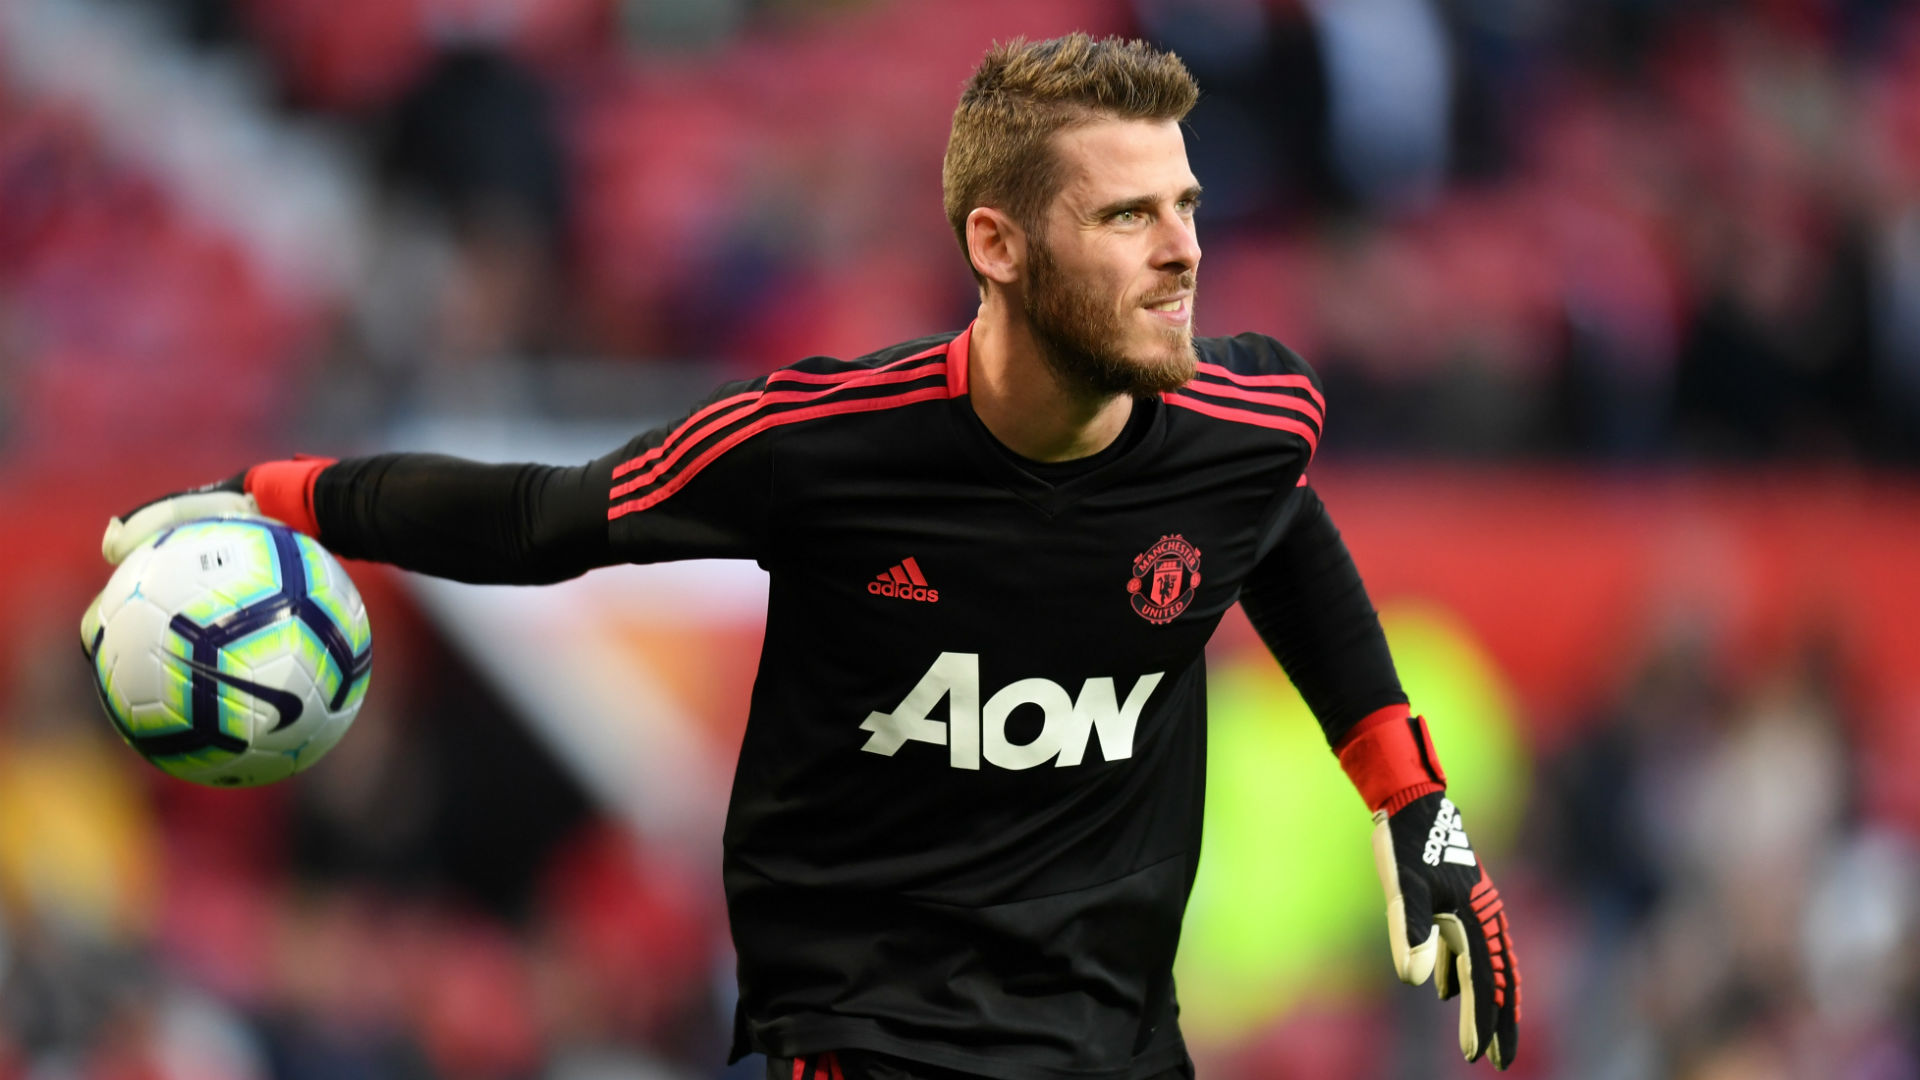 De Gea will extend contract soon, says Mourinho